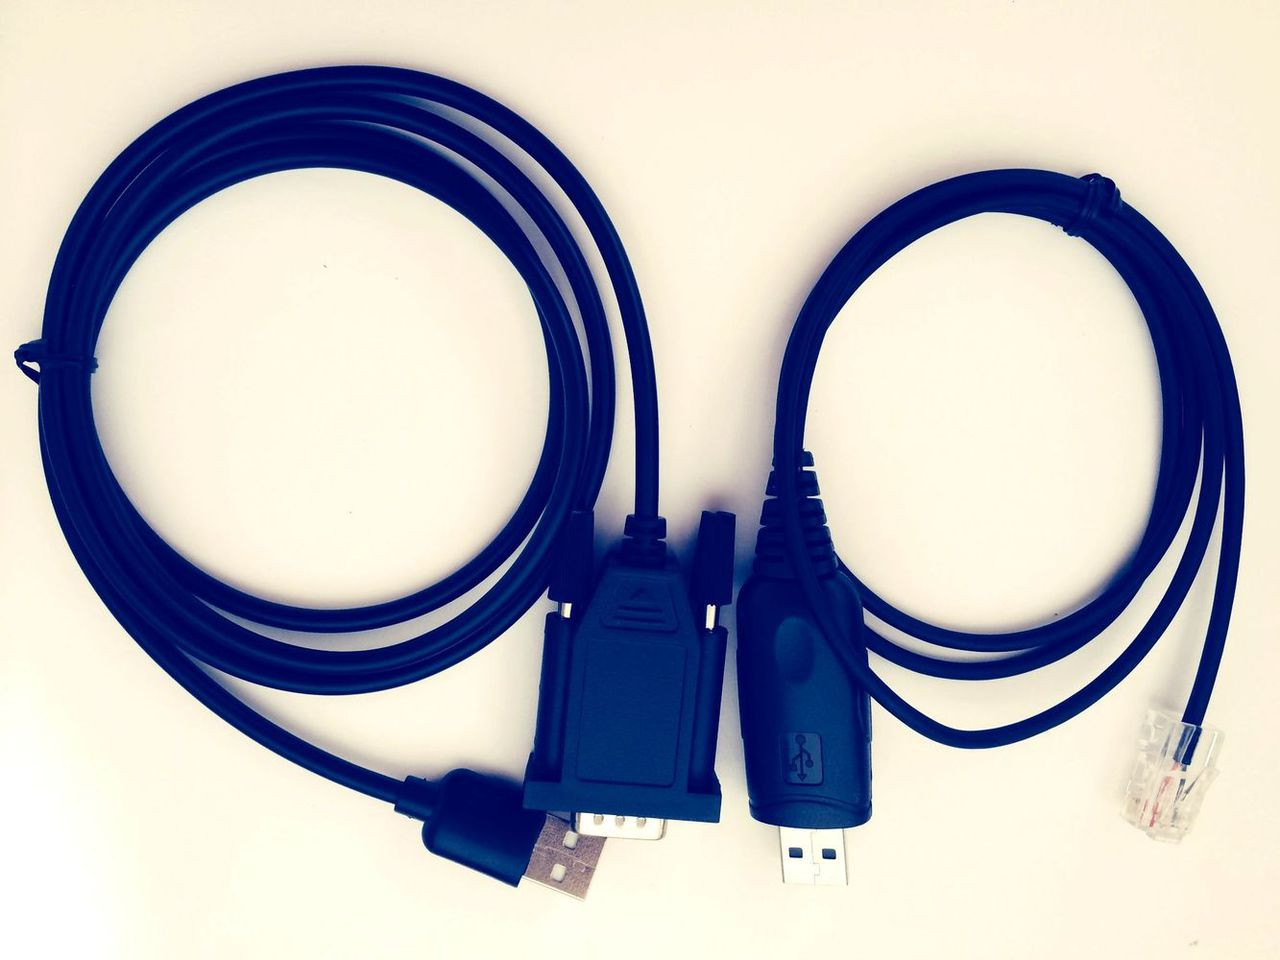 Both Cables cost a total of $15